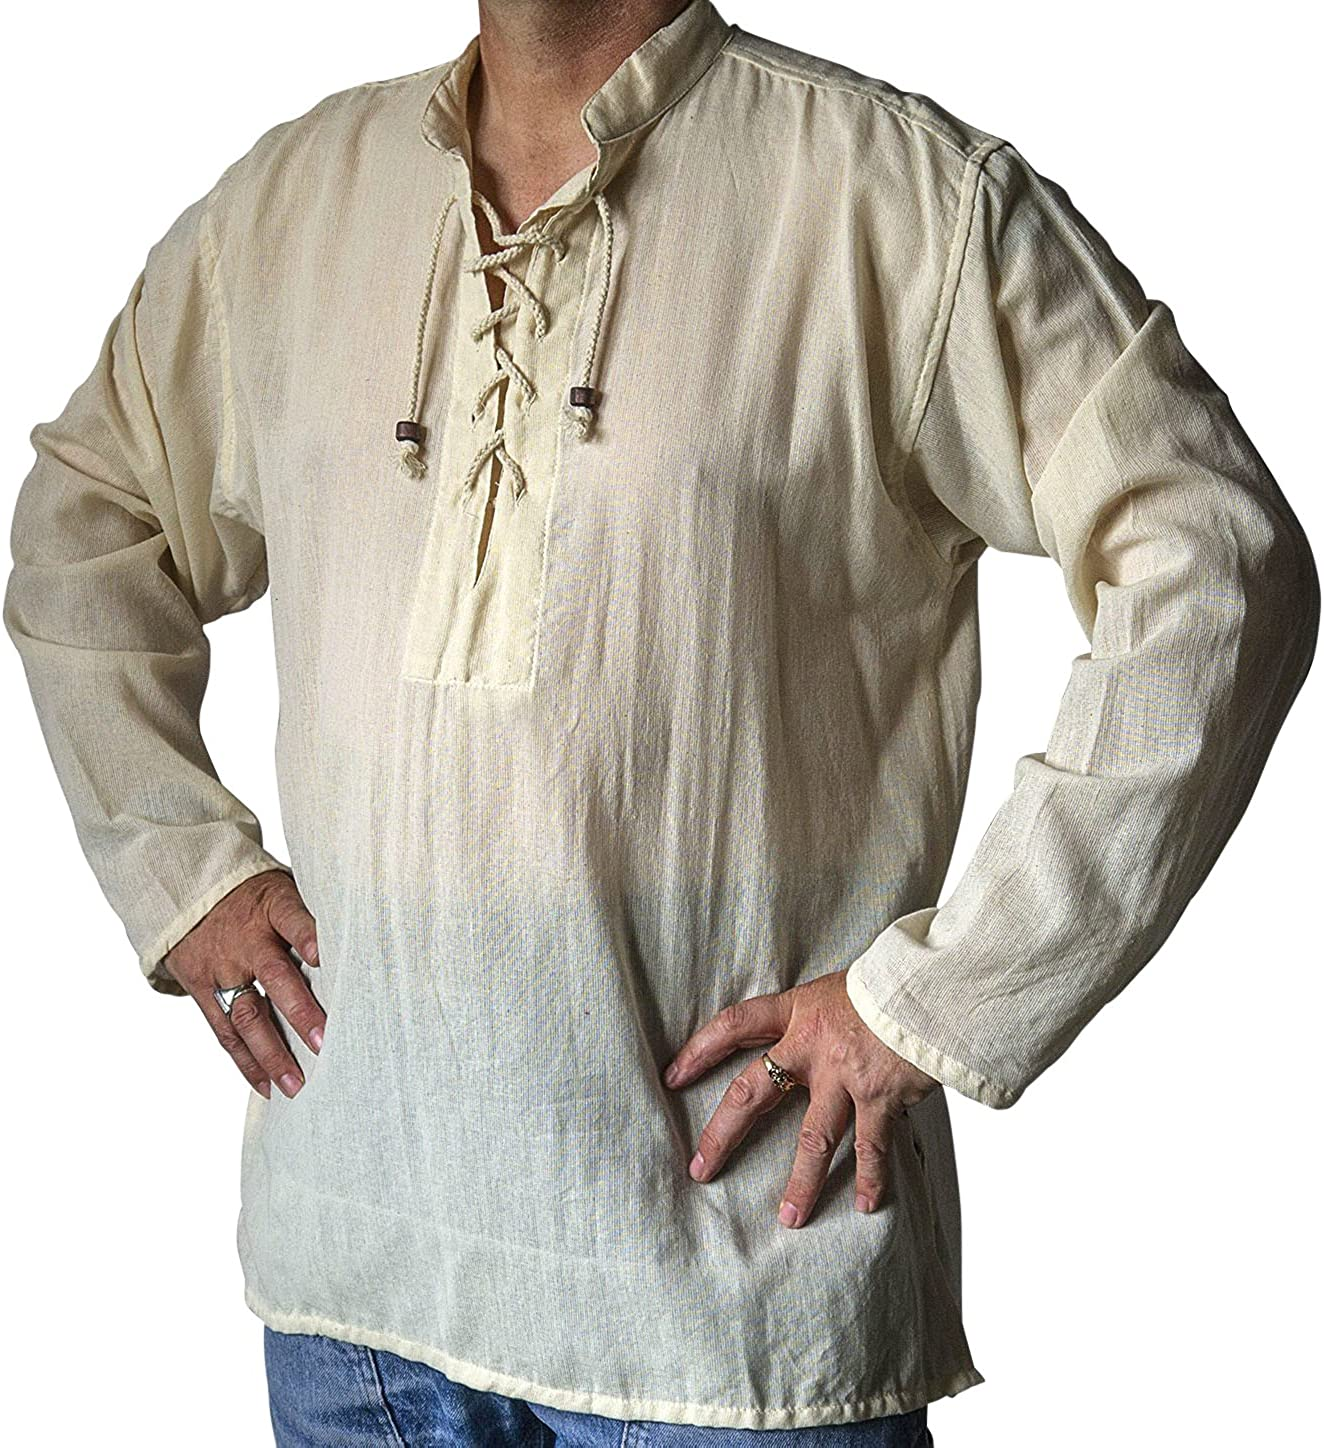 NATURAL FLOW Fair Trade Hippy Boho Cotton Festival Gothic LARP Pirate Day Kurta Shirt